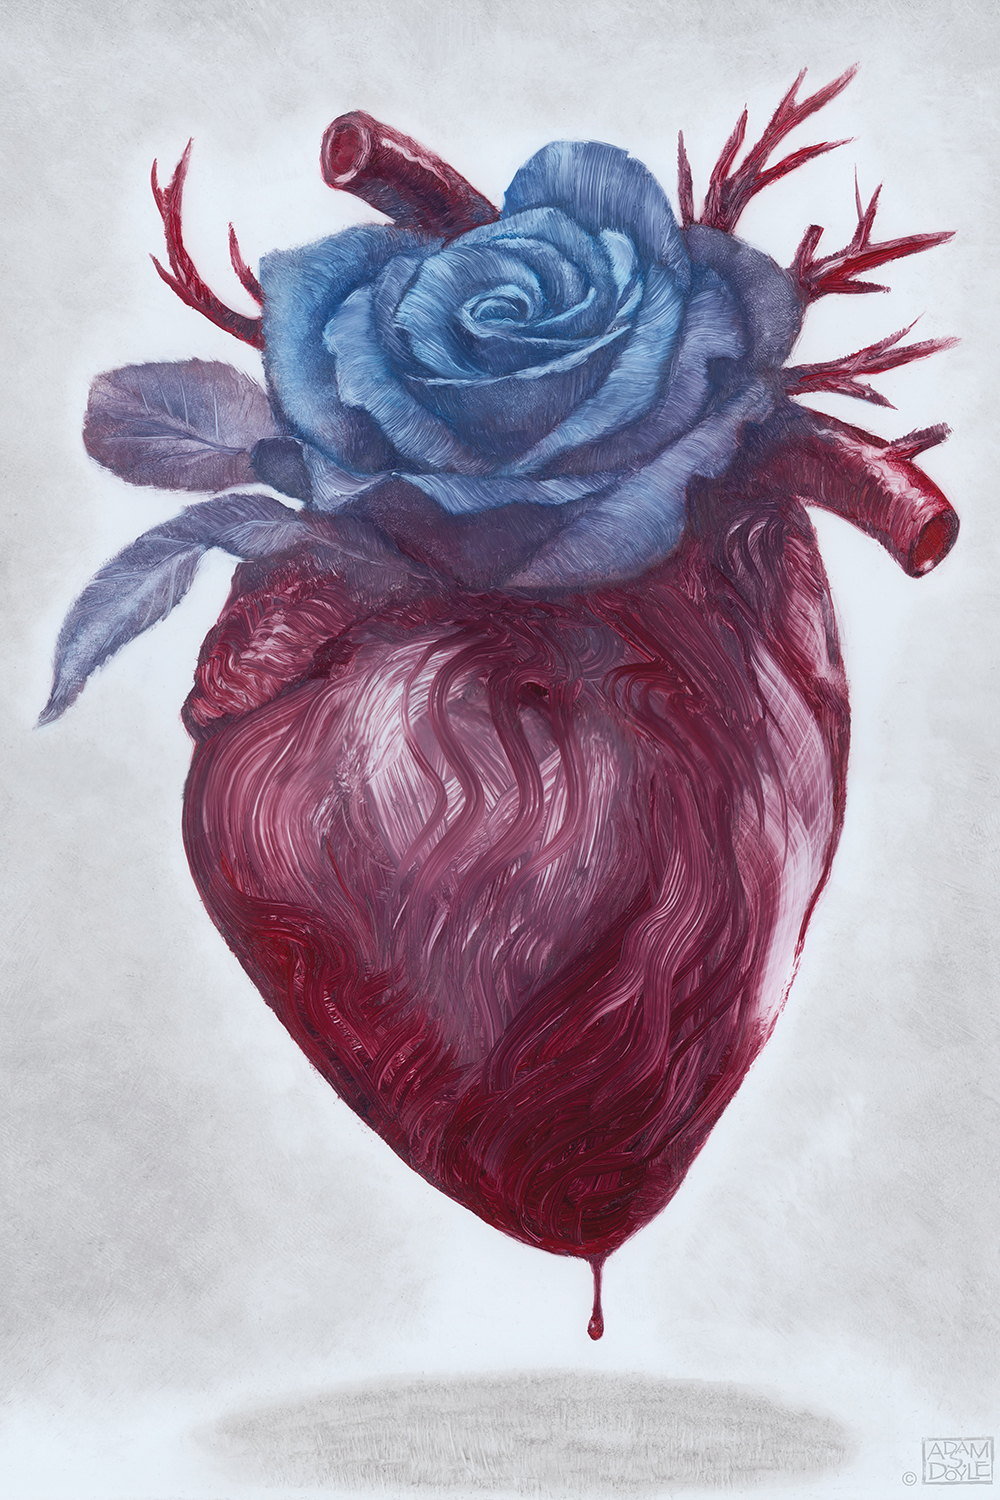 an anatomical heart dripping blood with a large blue rose